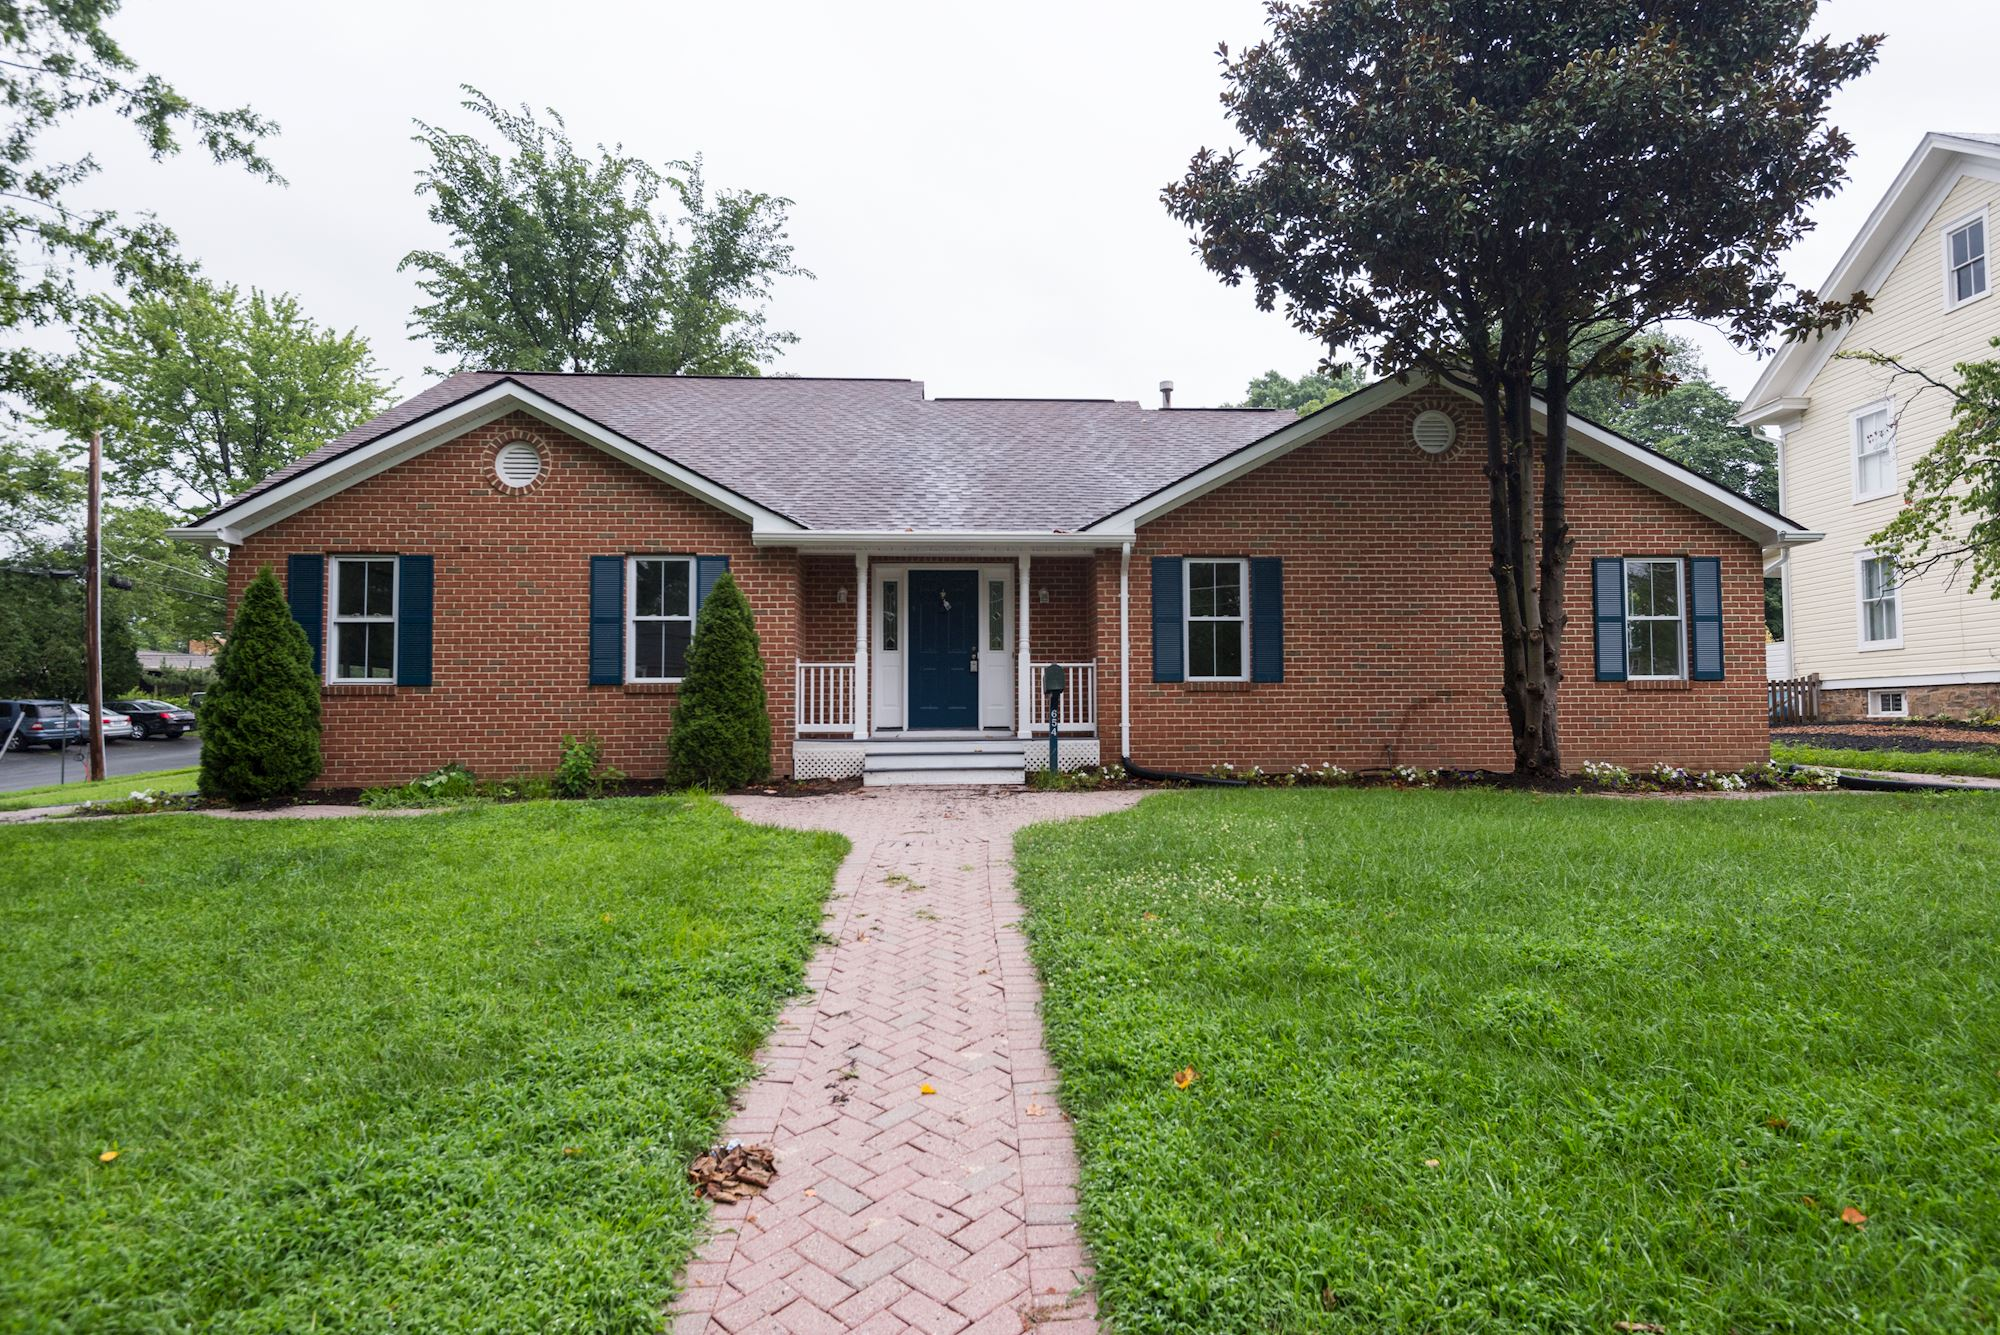 NEW LISTING: Renovated Single Family Home In Heart of Herndon